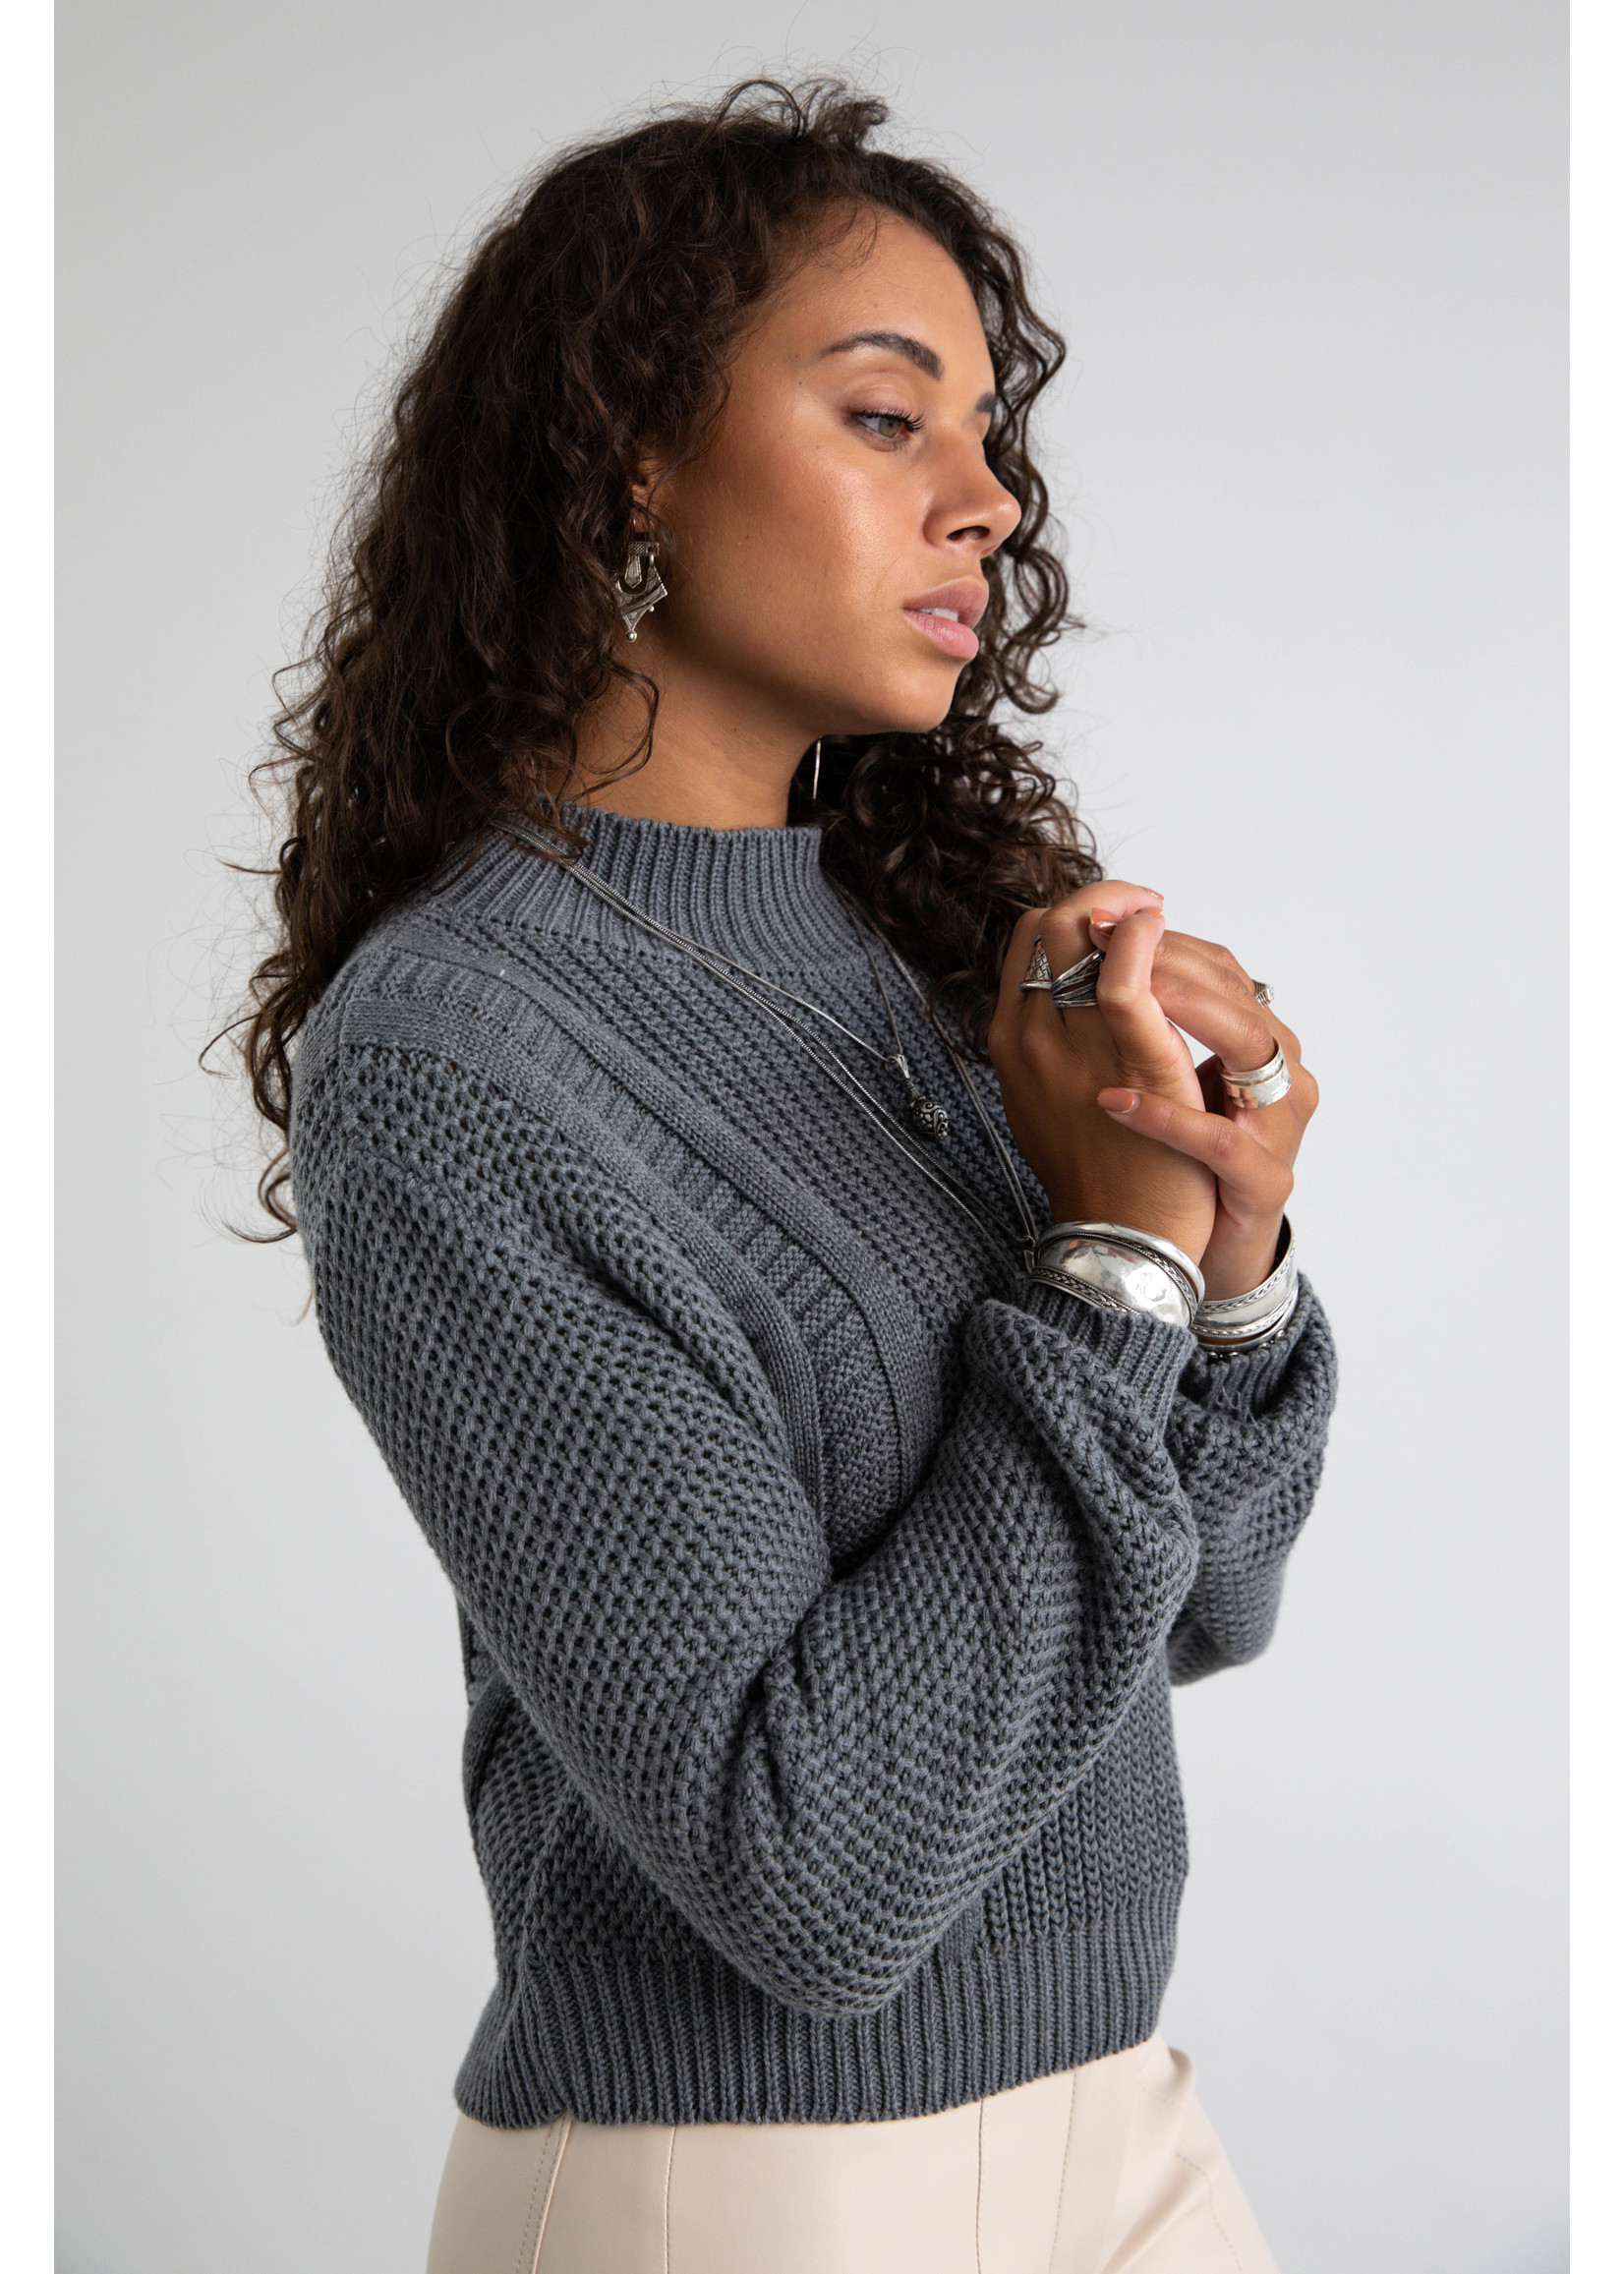 Moost Wanted Aster knitted sweater STONE GREY